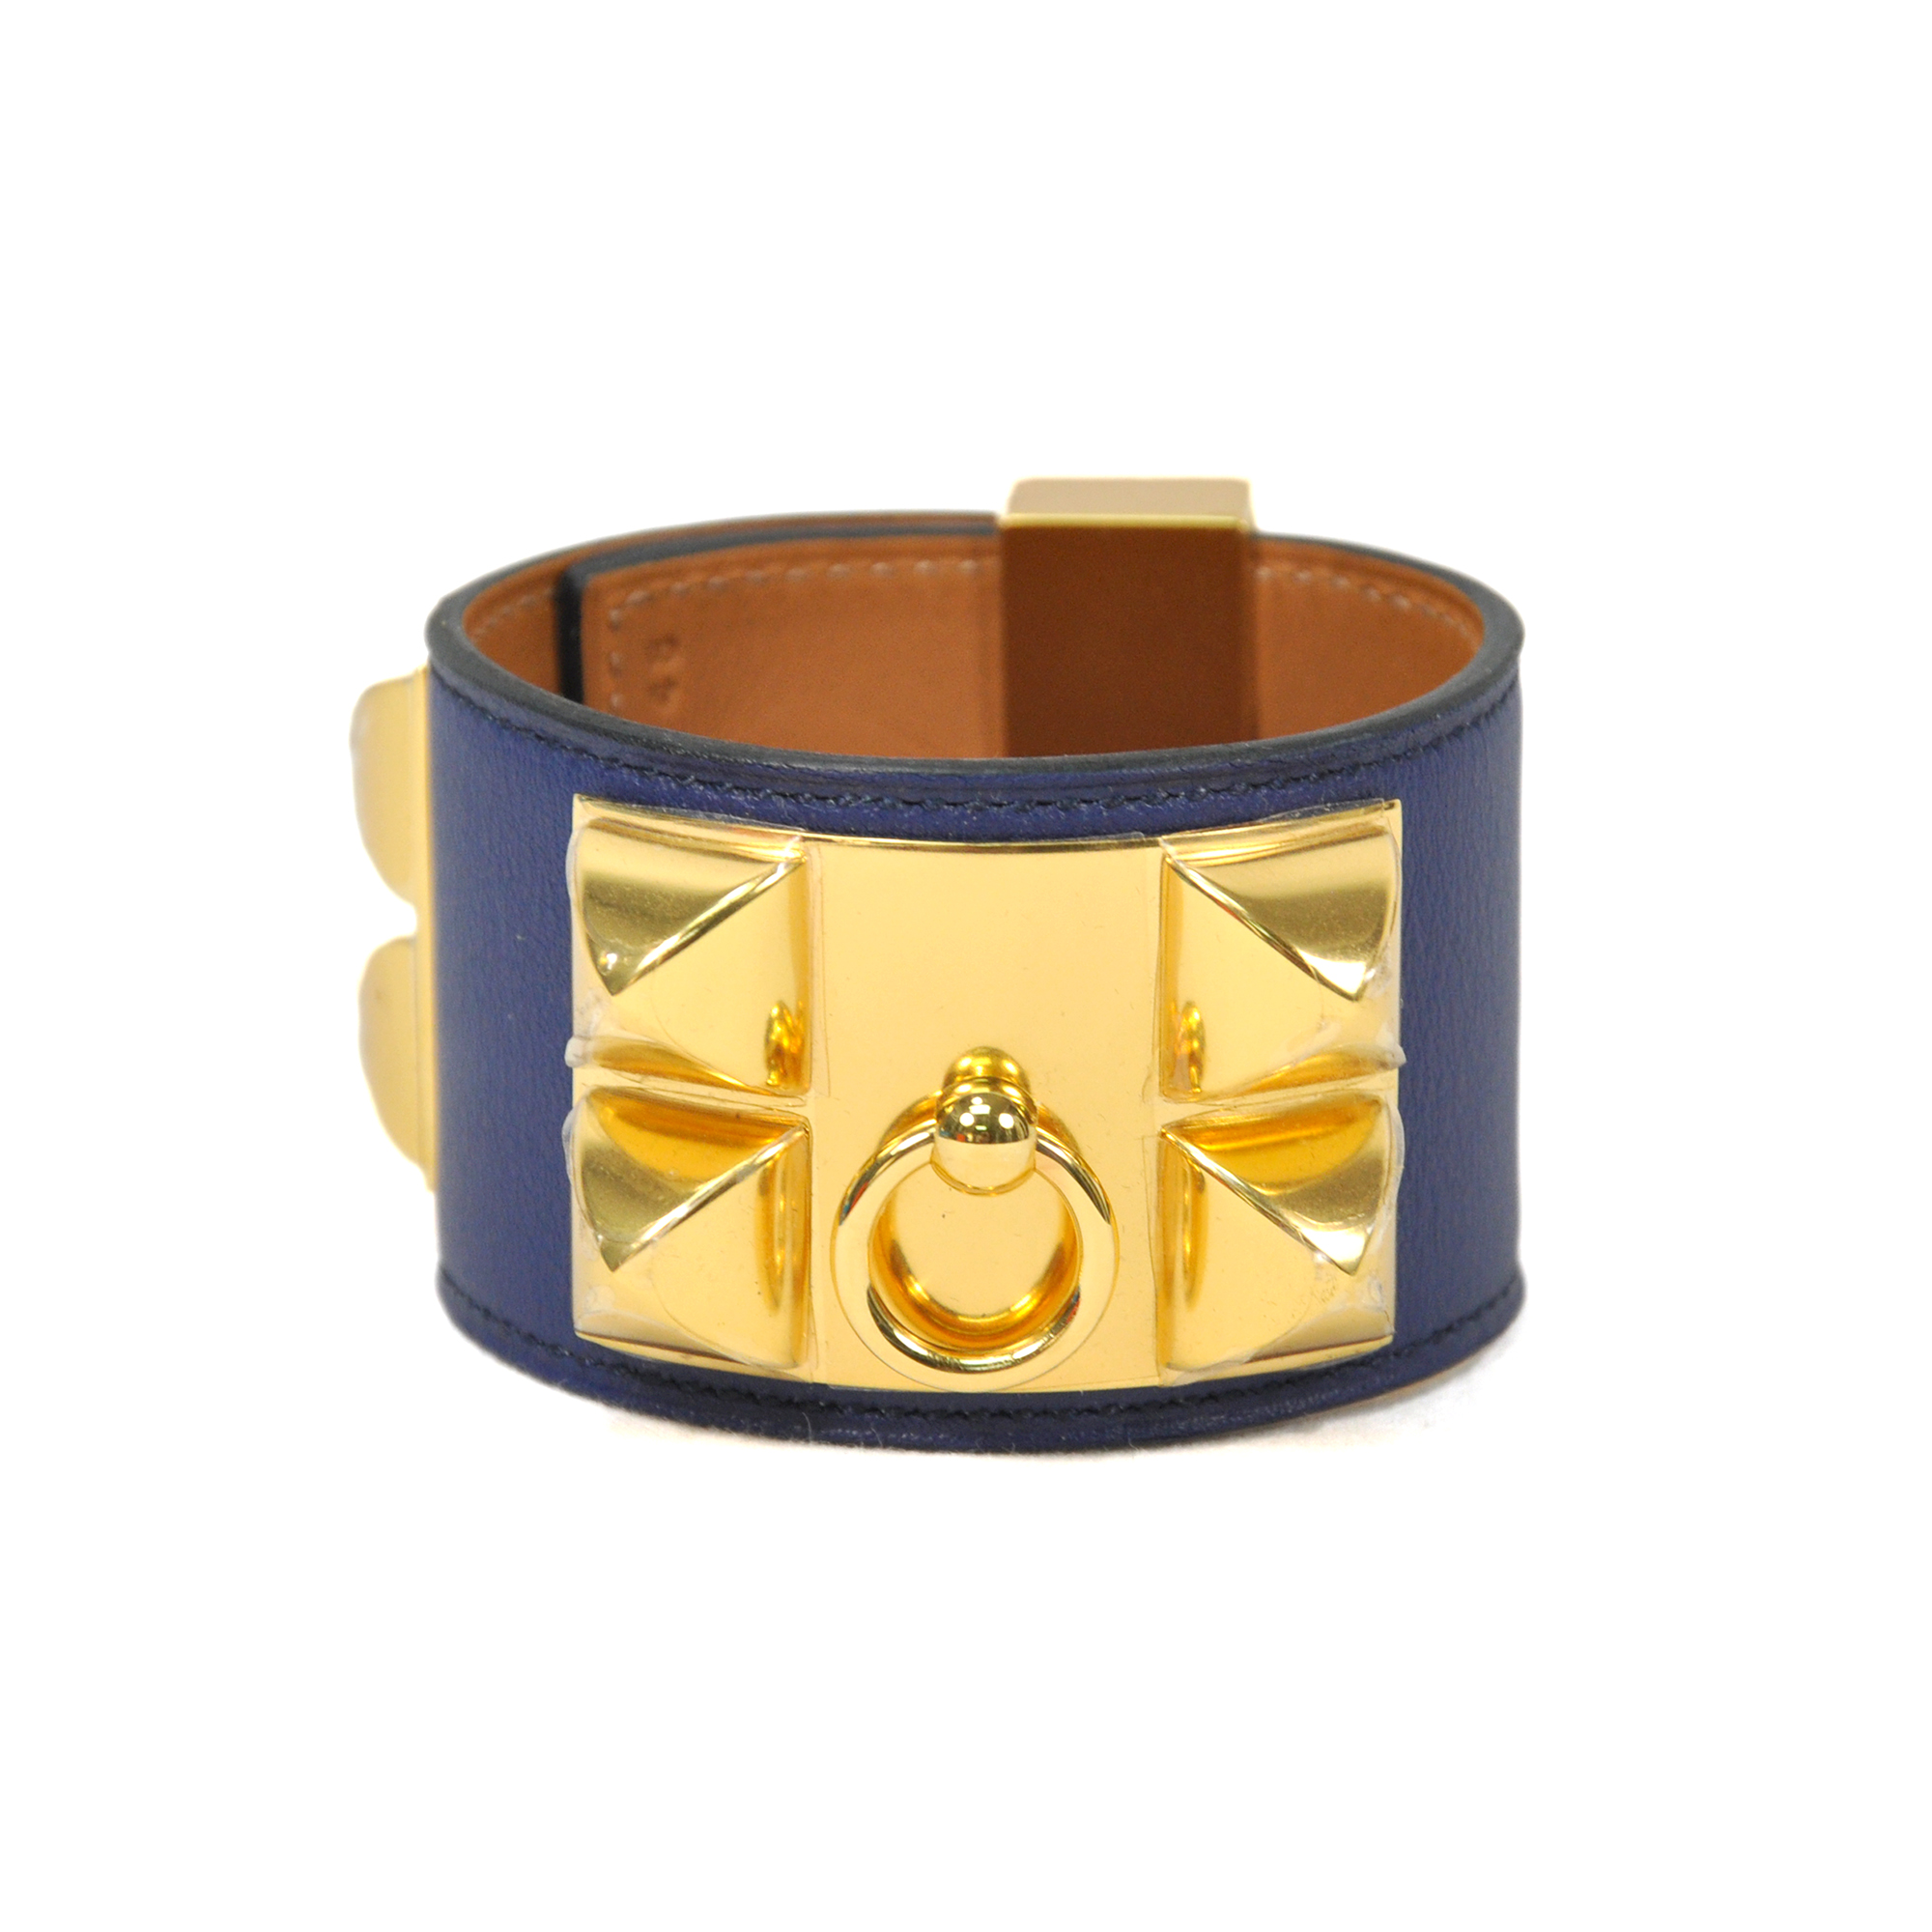 second hand hermes collier de chien bracelet blue the fifth collection. Black Bedroom Furniture Sets. Home Design Ideas